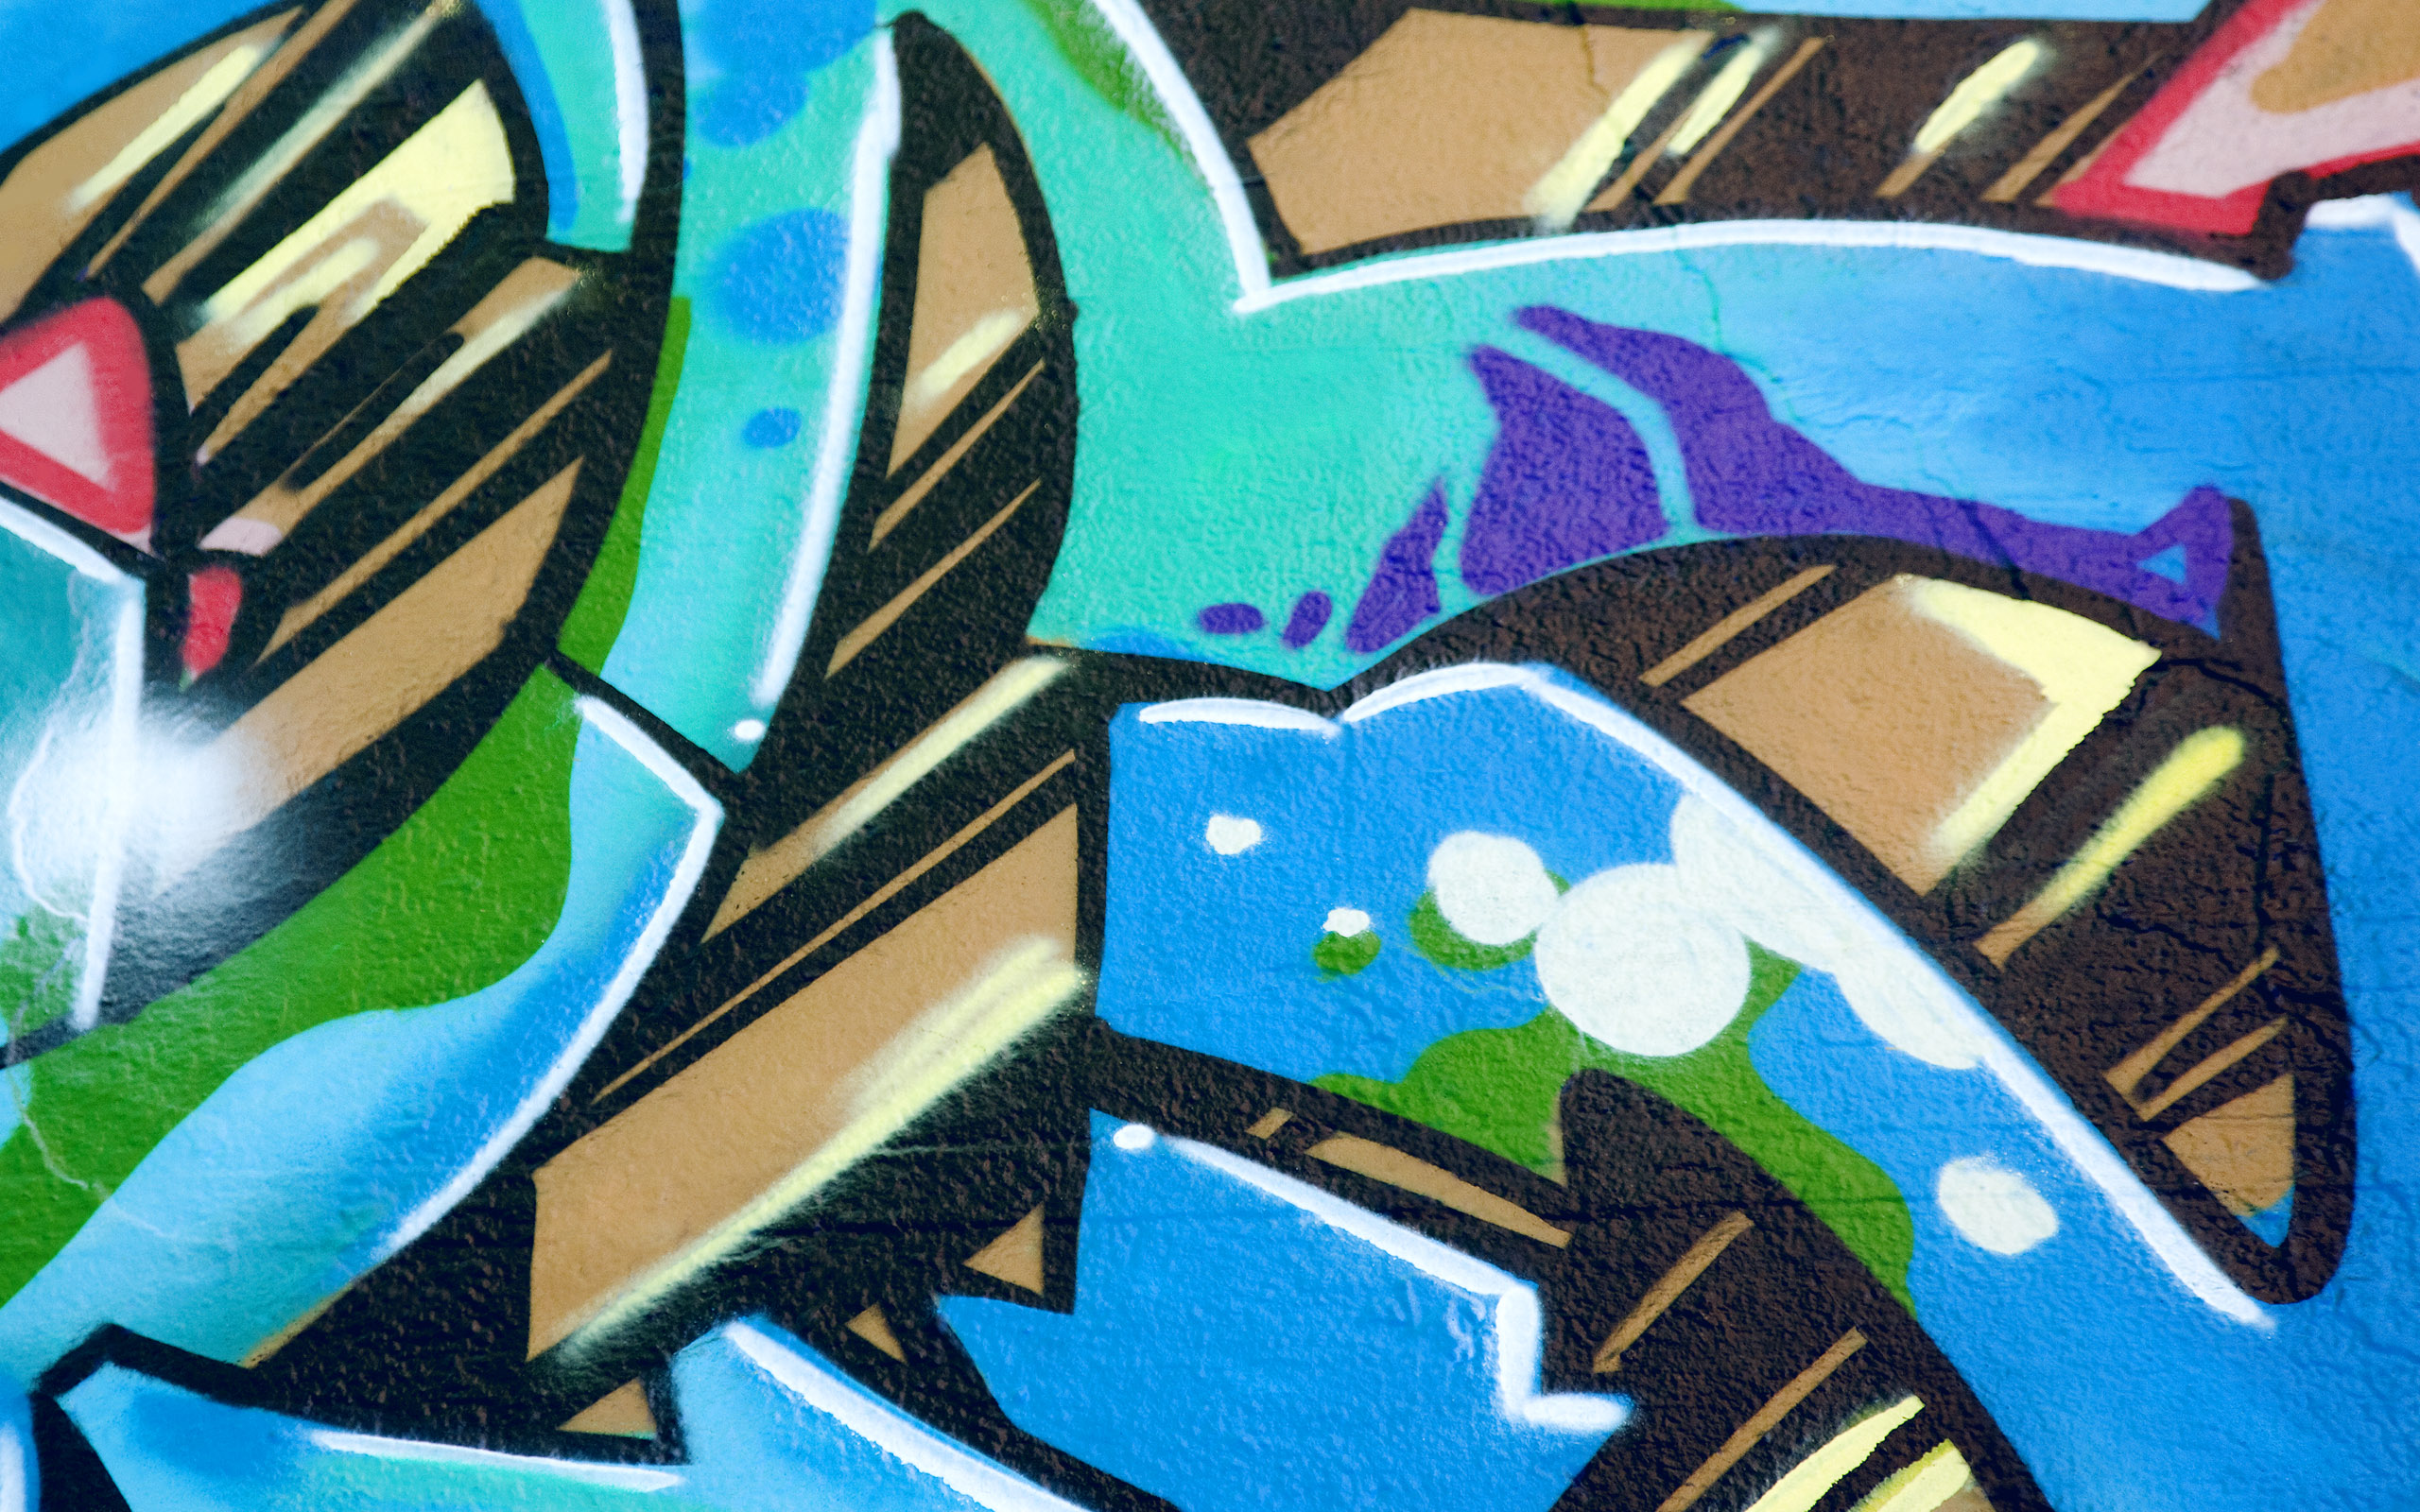 2560x1600 Graffiti Blue desktop wallpapers and stock photos